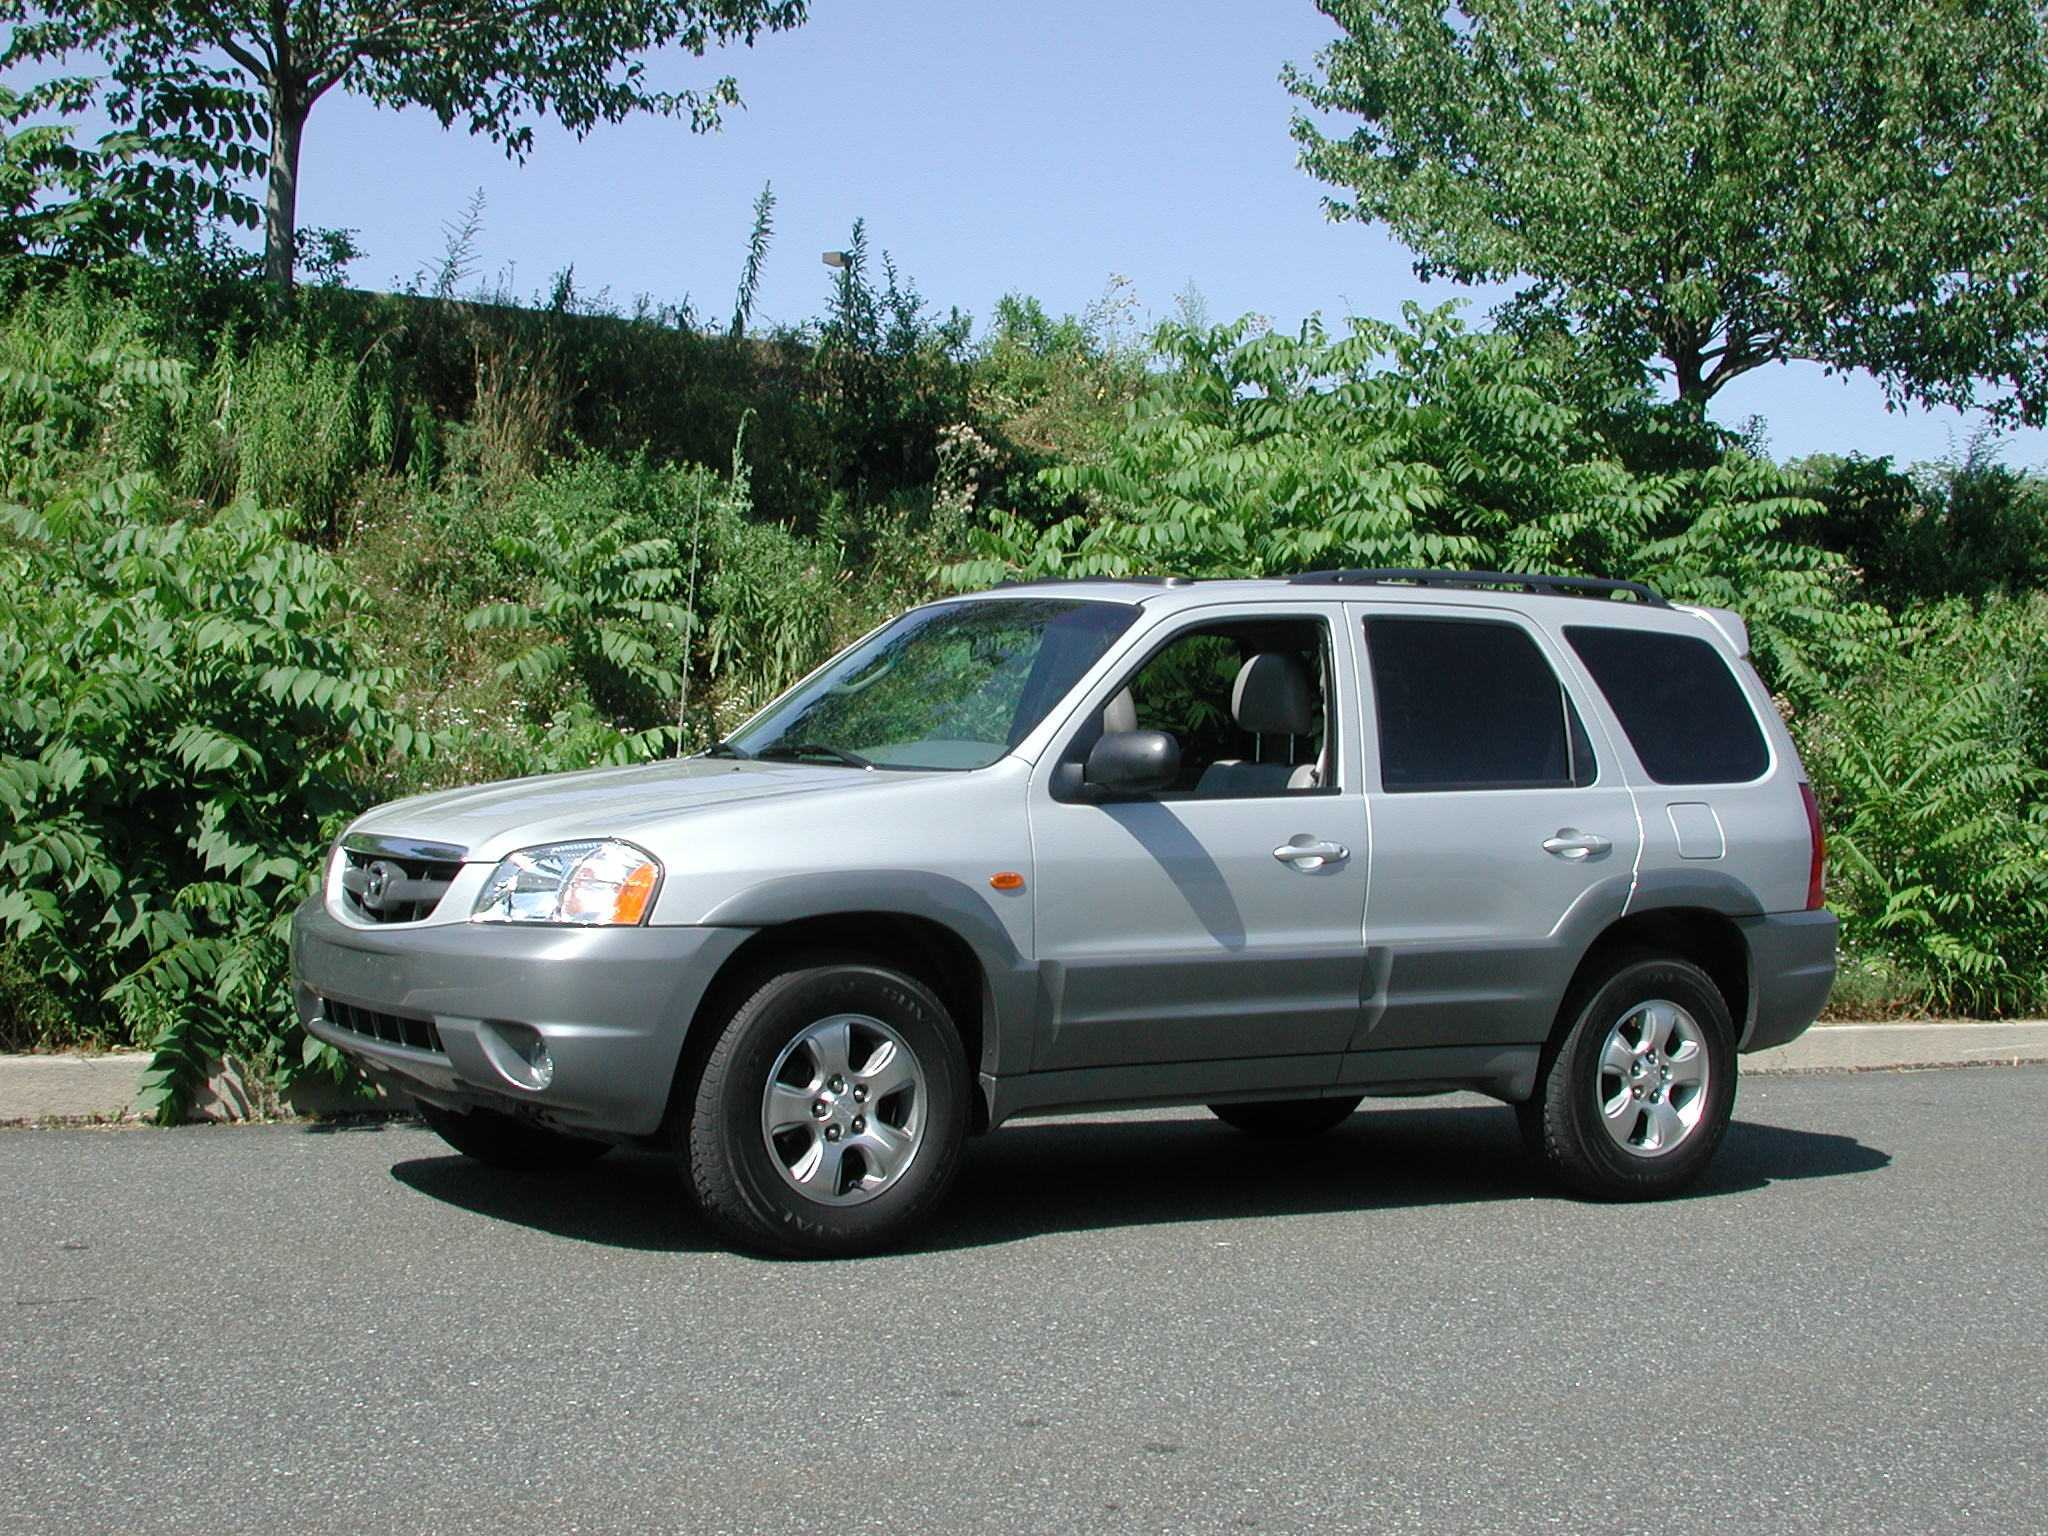 Mazda Tribute Hybrid wheels #2